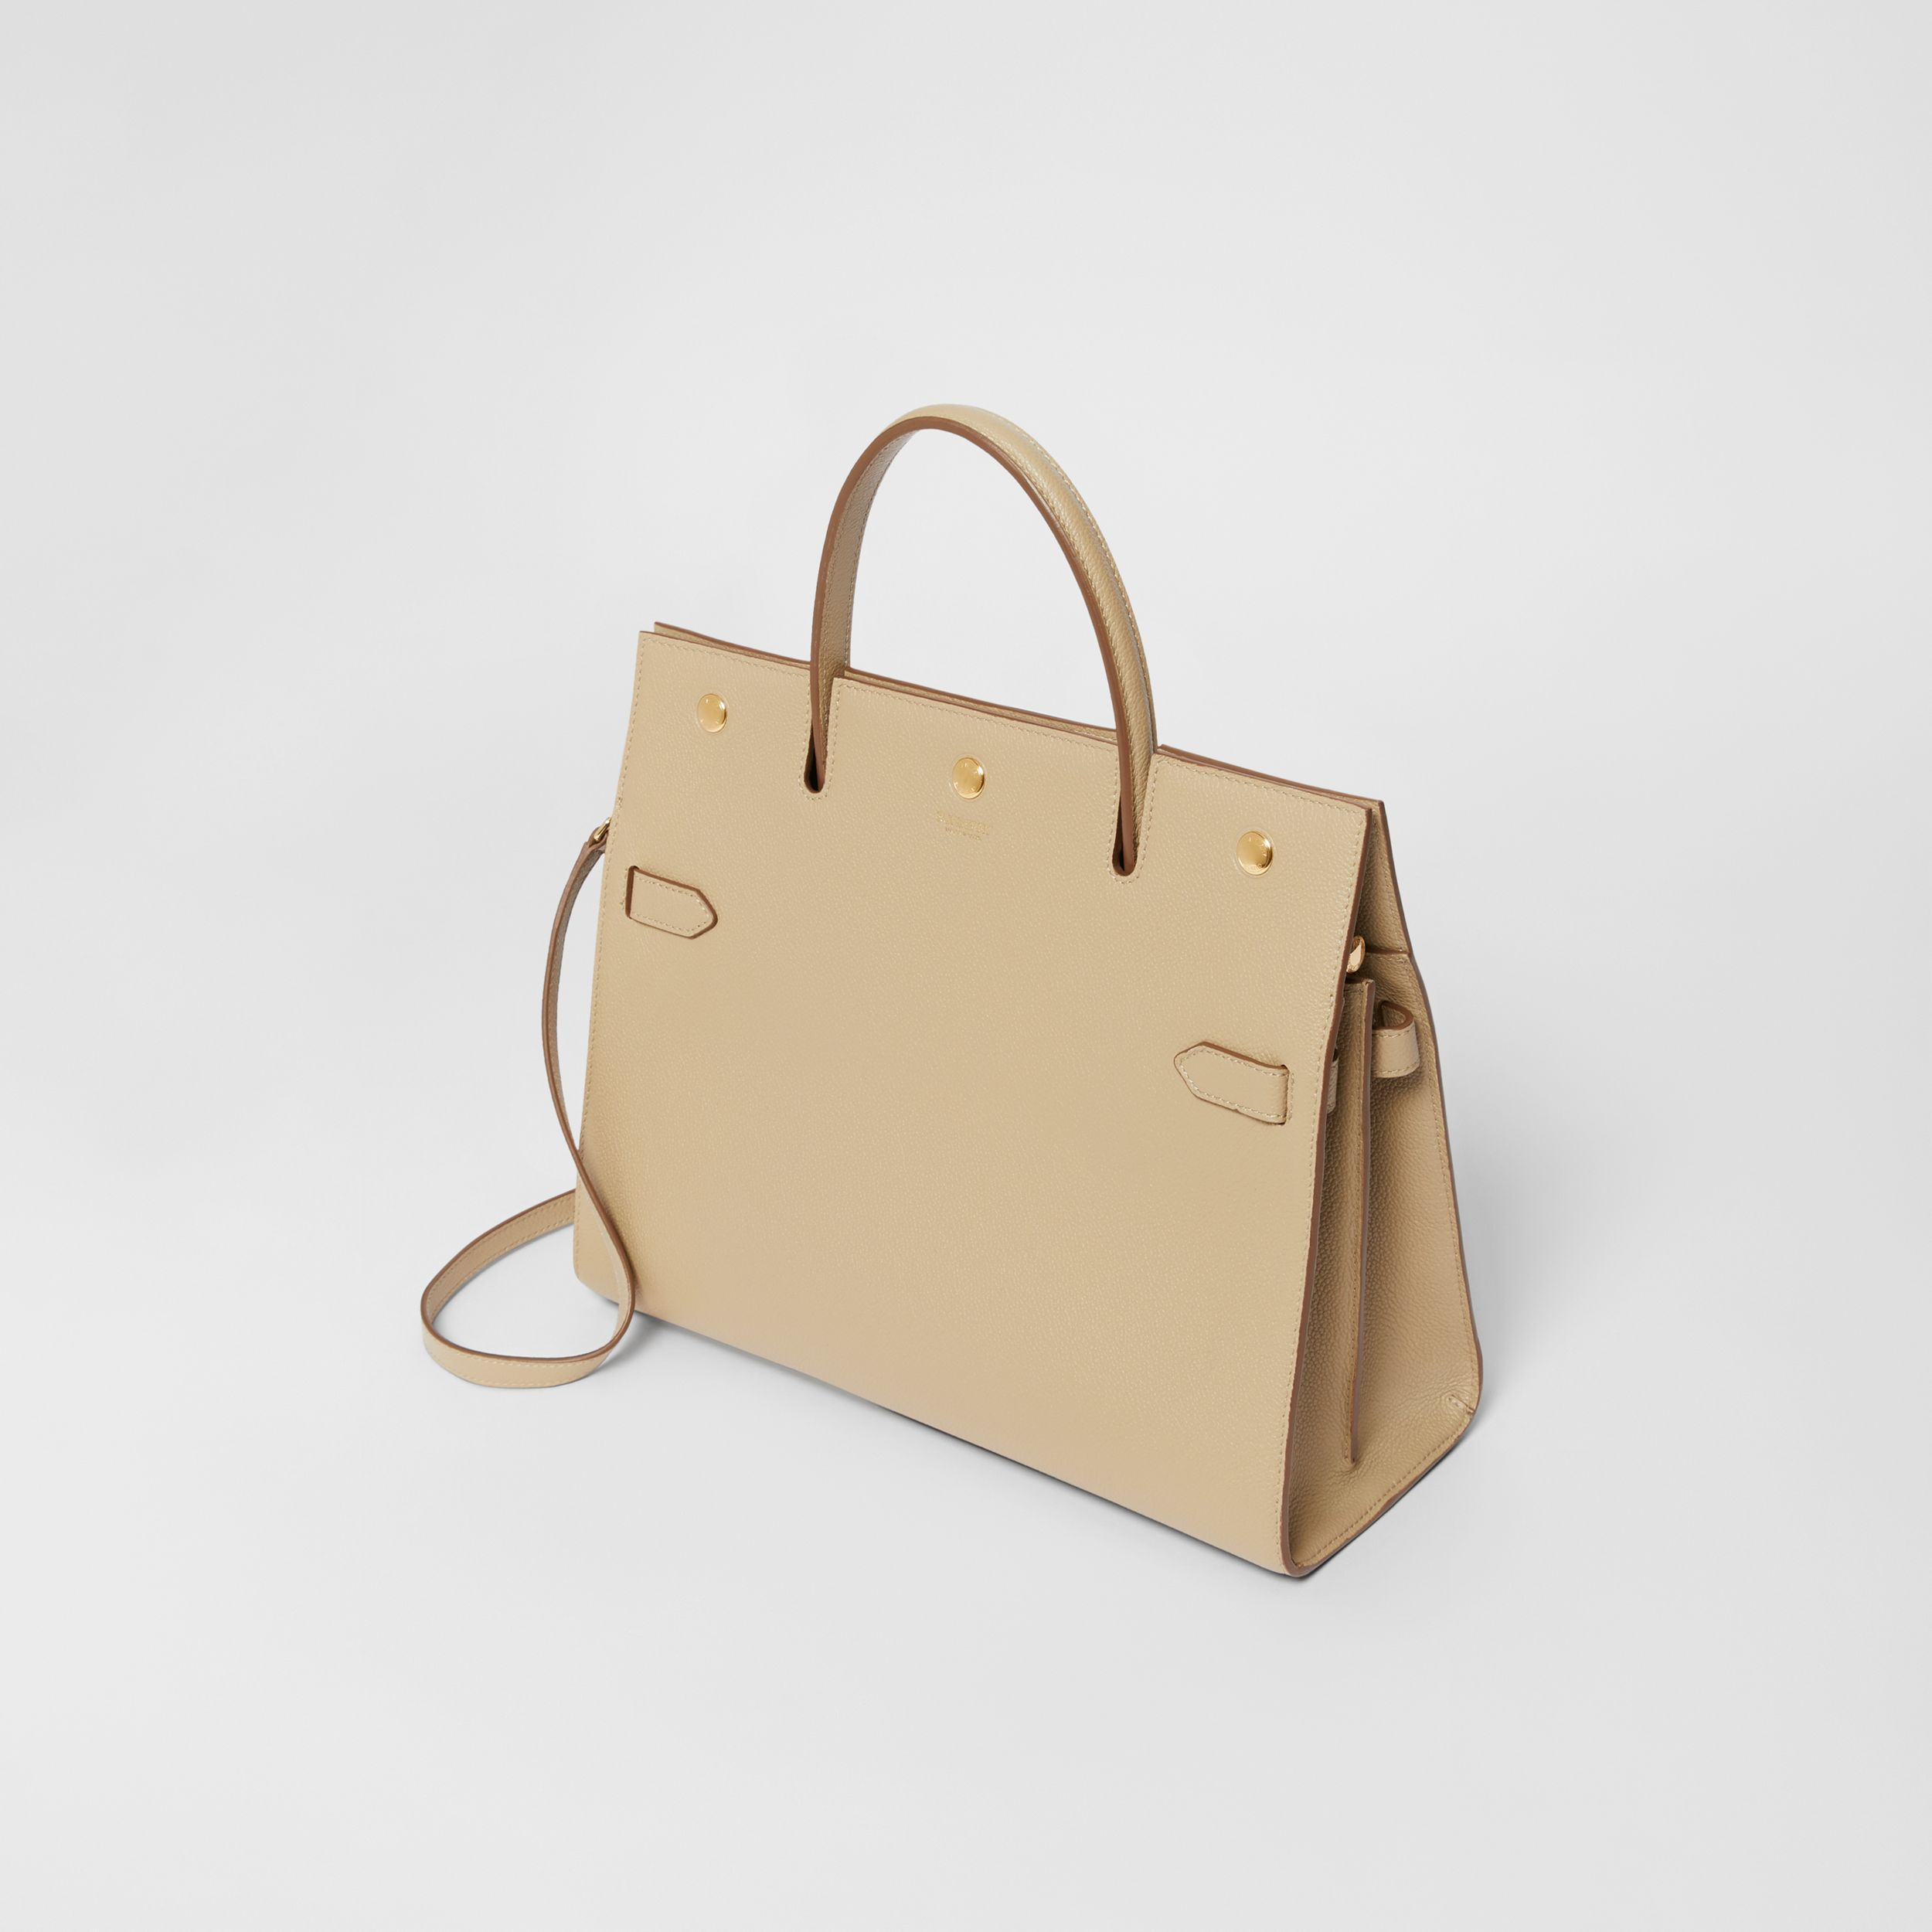 Medium Leather Title Bag in Honey - Women | Burberry - 4